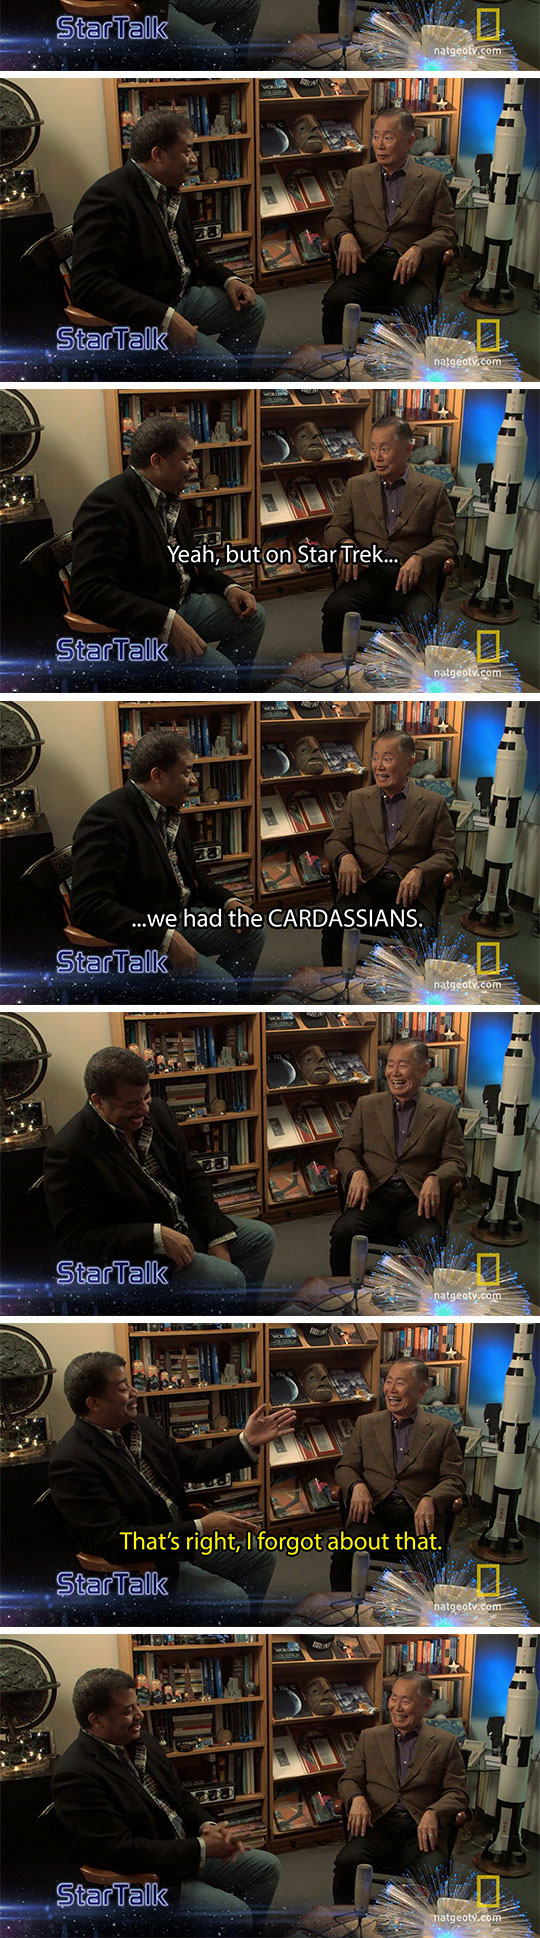 3-funny-neil-degrasse-tyson-interview-takei